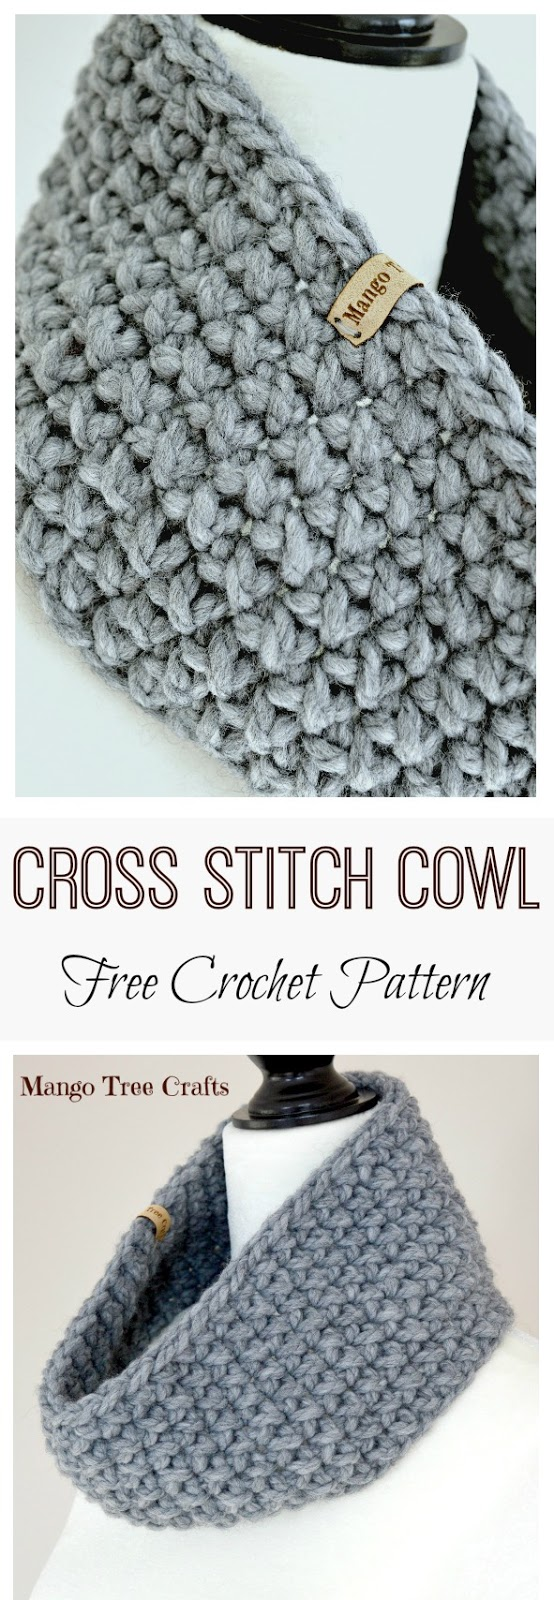 Cross Stitch Cowl Crochet Pattern